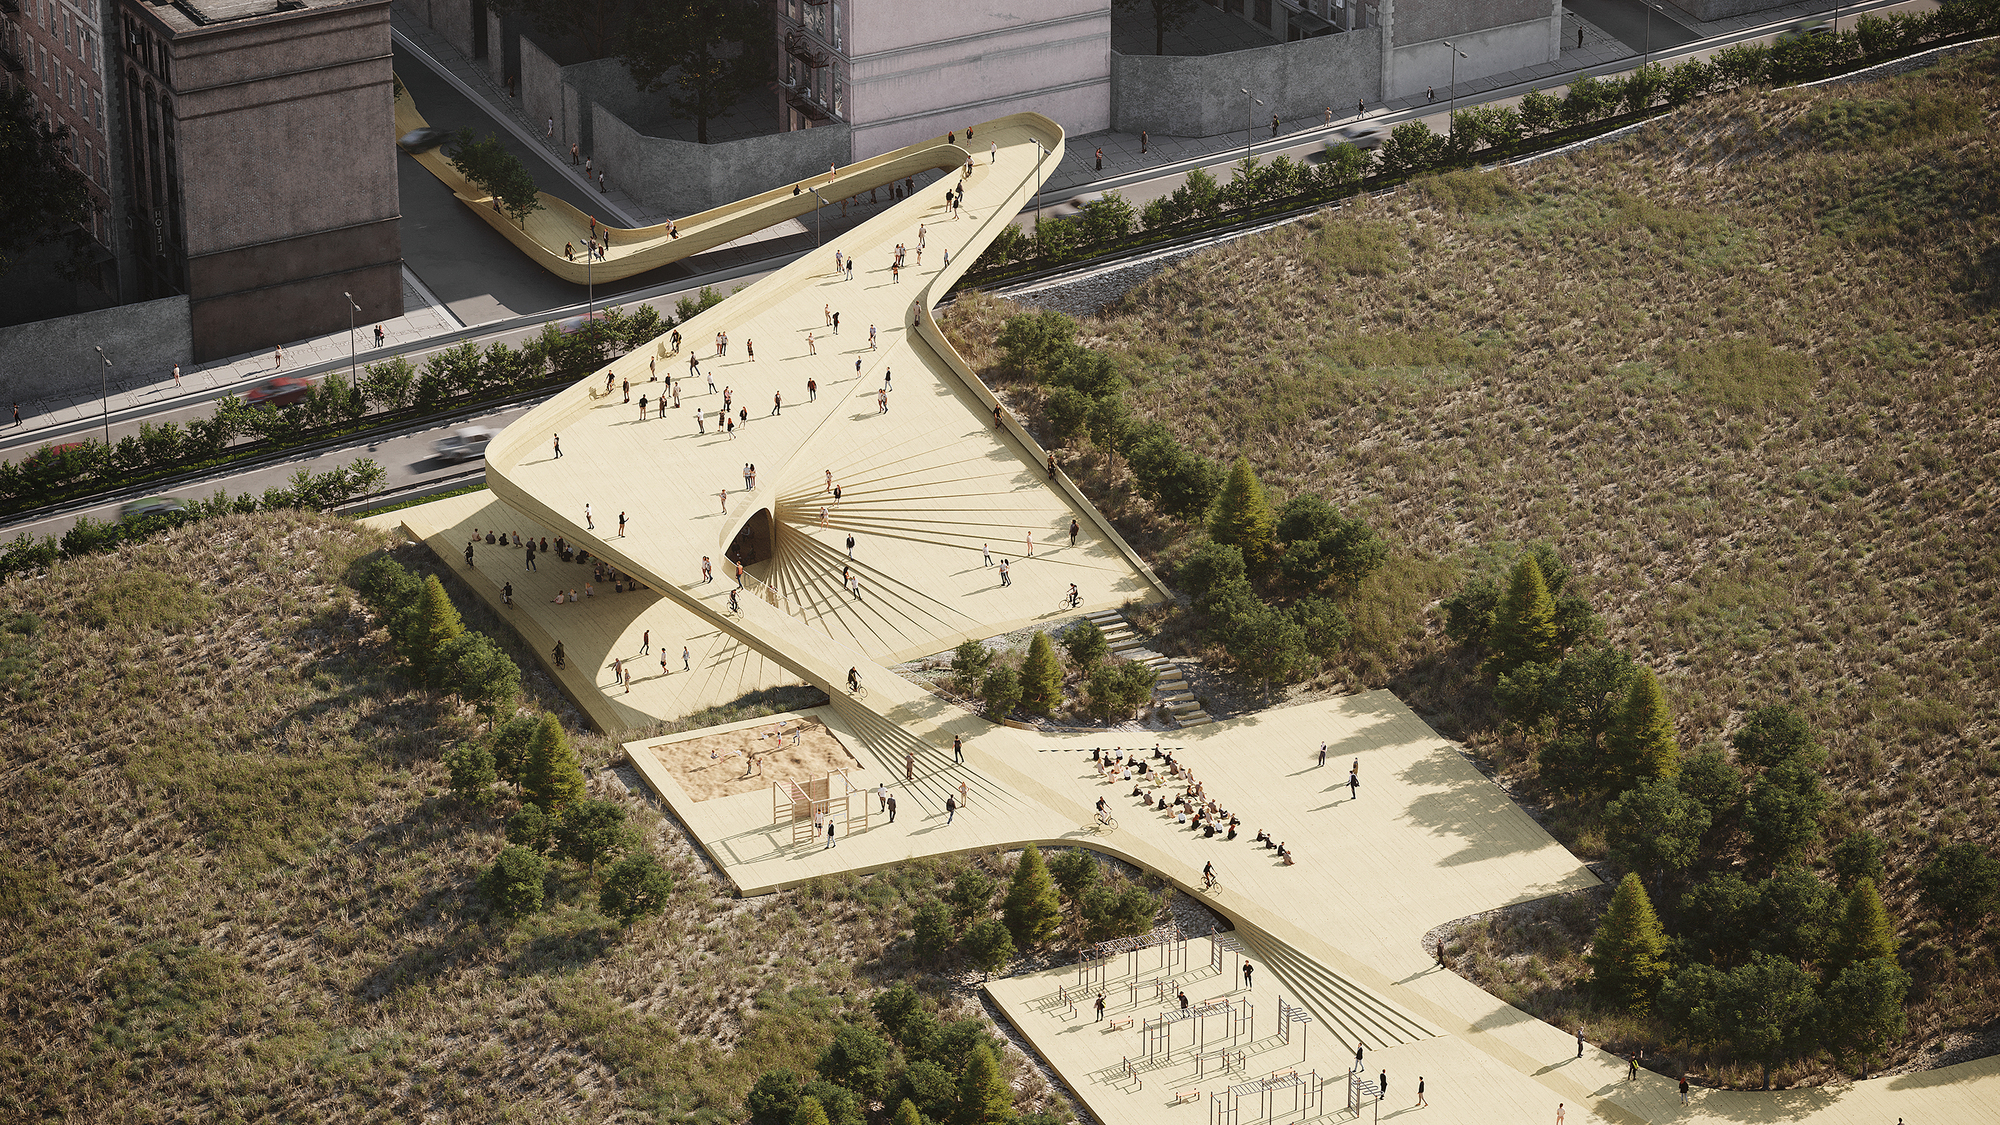 An Office Tower Turned into Housing in the US and a Circular School Design in Ethiopia: 10 Competition-Winning Projects Submitted to Archdaily